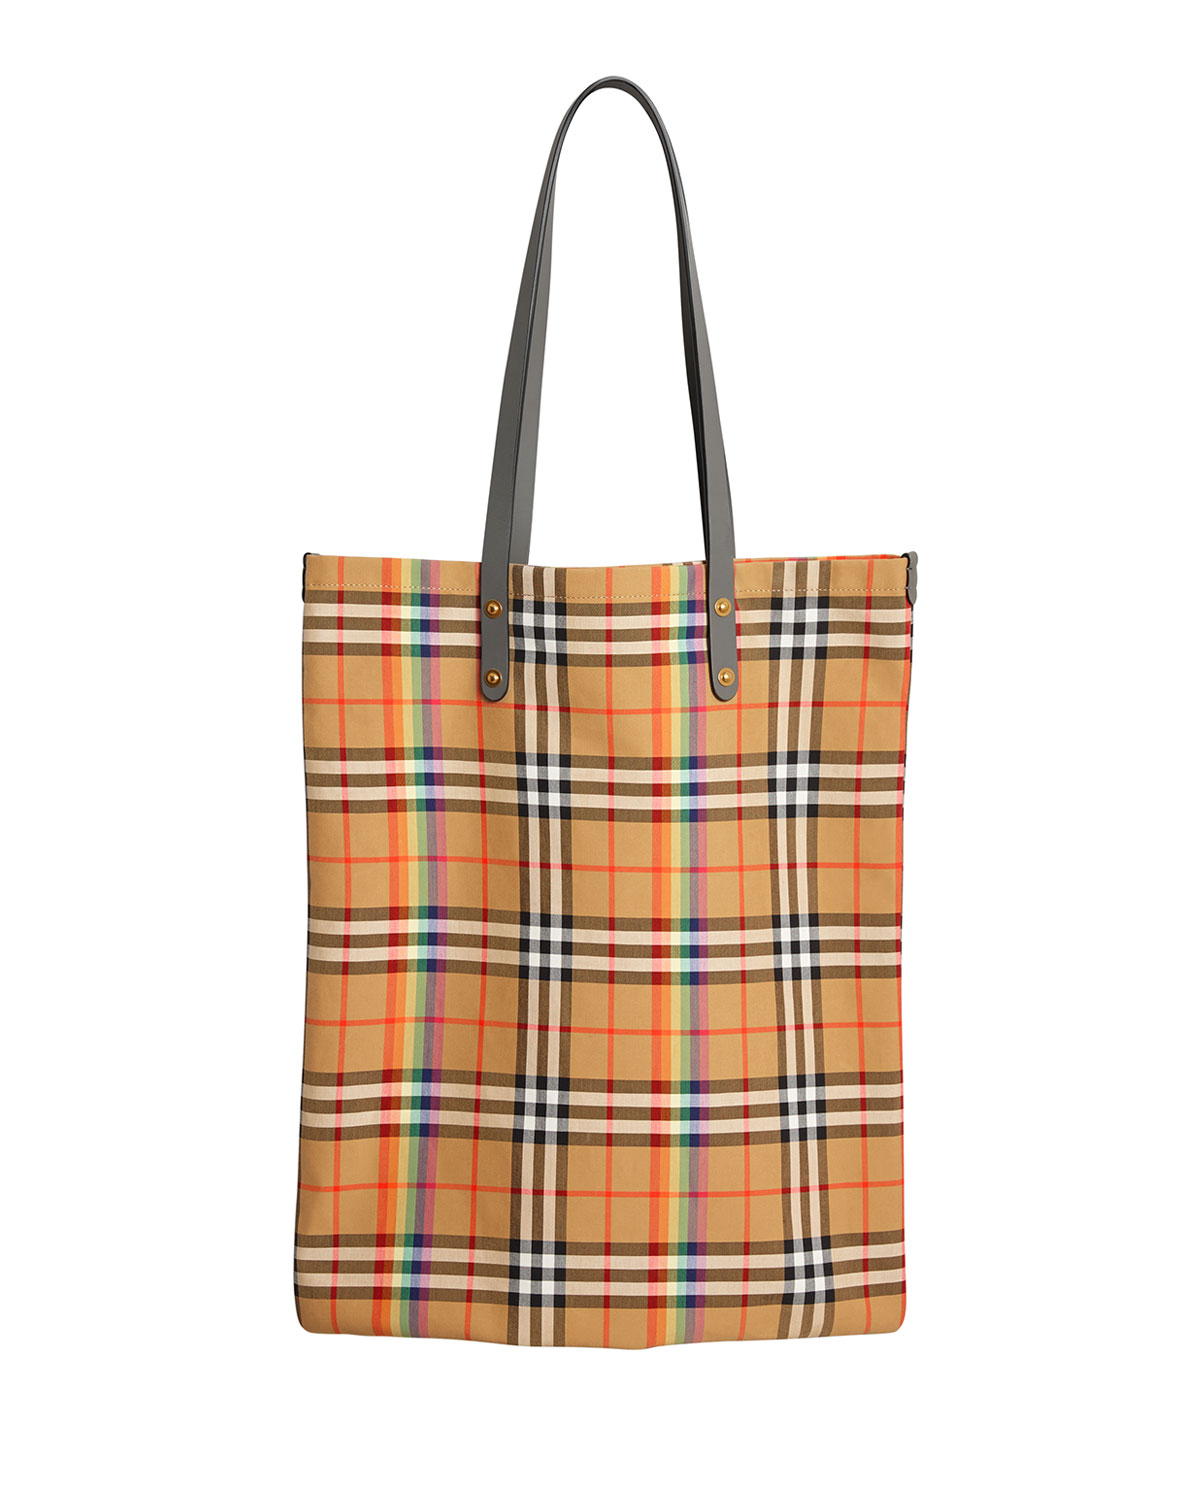 860591e73d56 BurberryVintage Check Rainbow Large Shopper Tote Bag